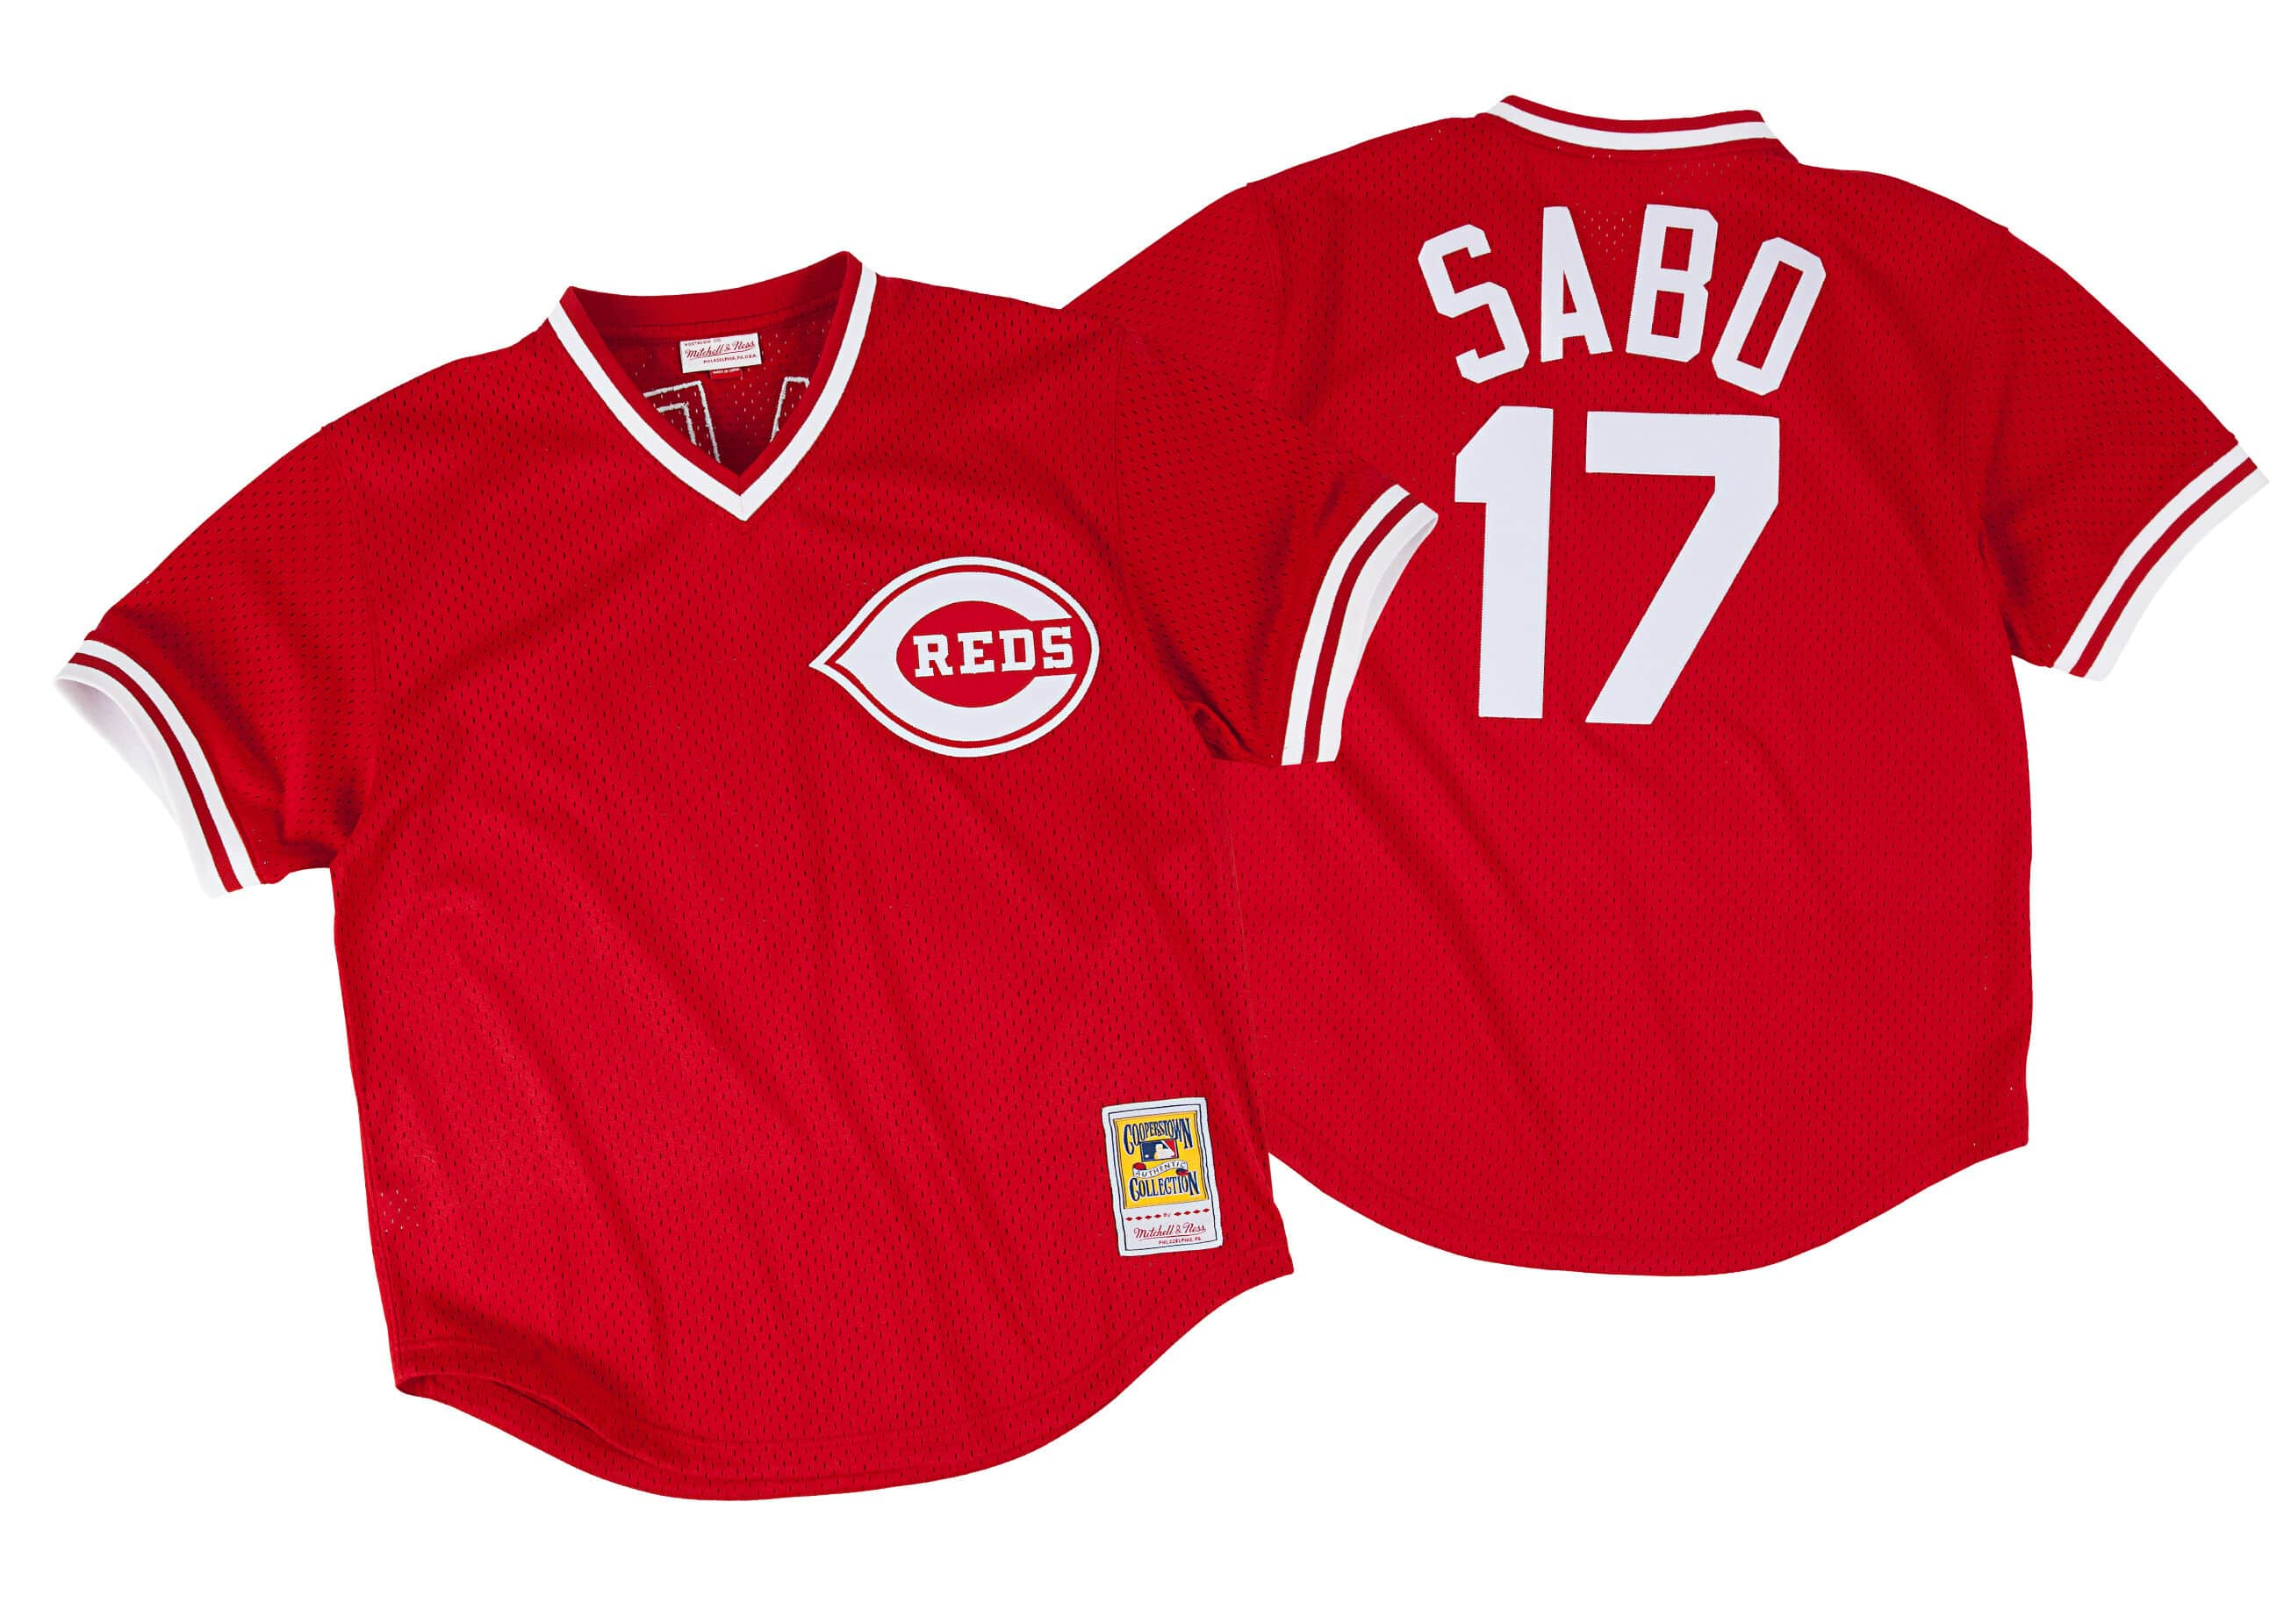 Chris Sabo 1990 Authentic Mesh BP Jersey Cincinnati Reds